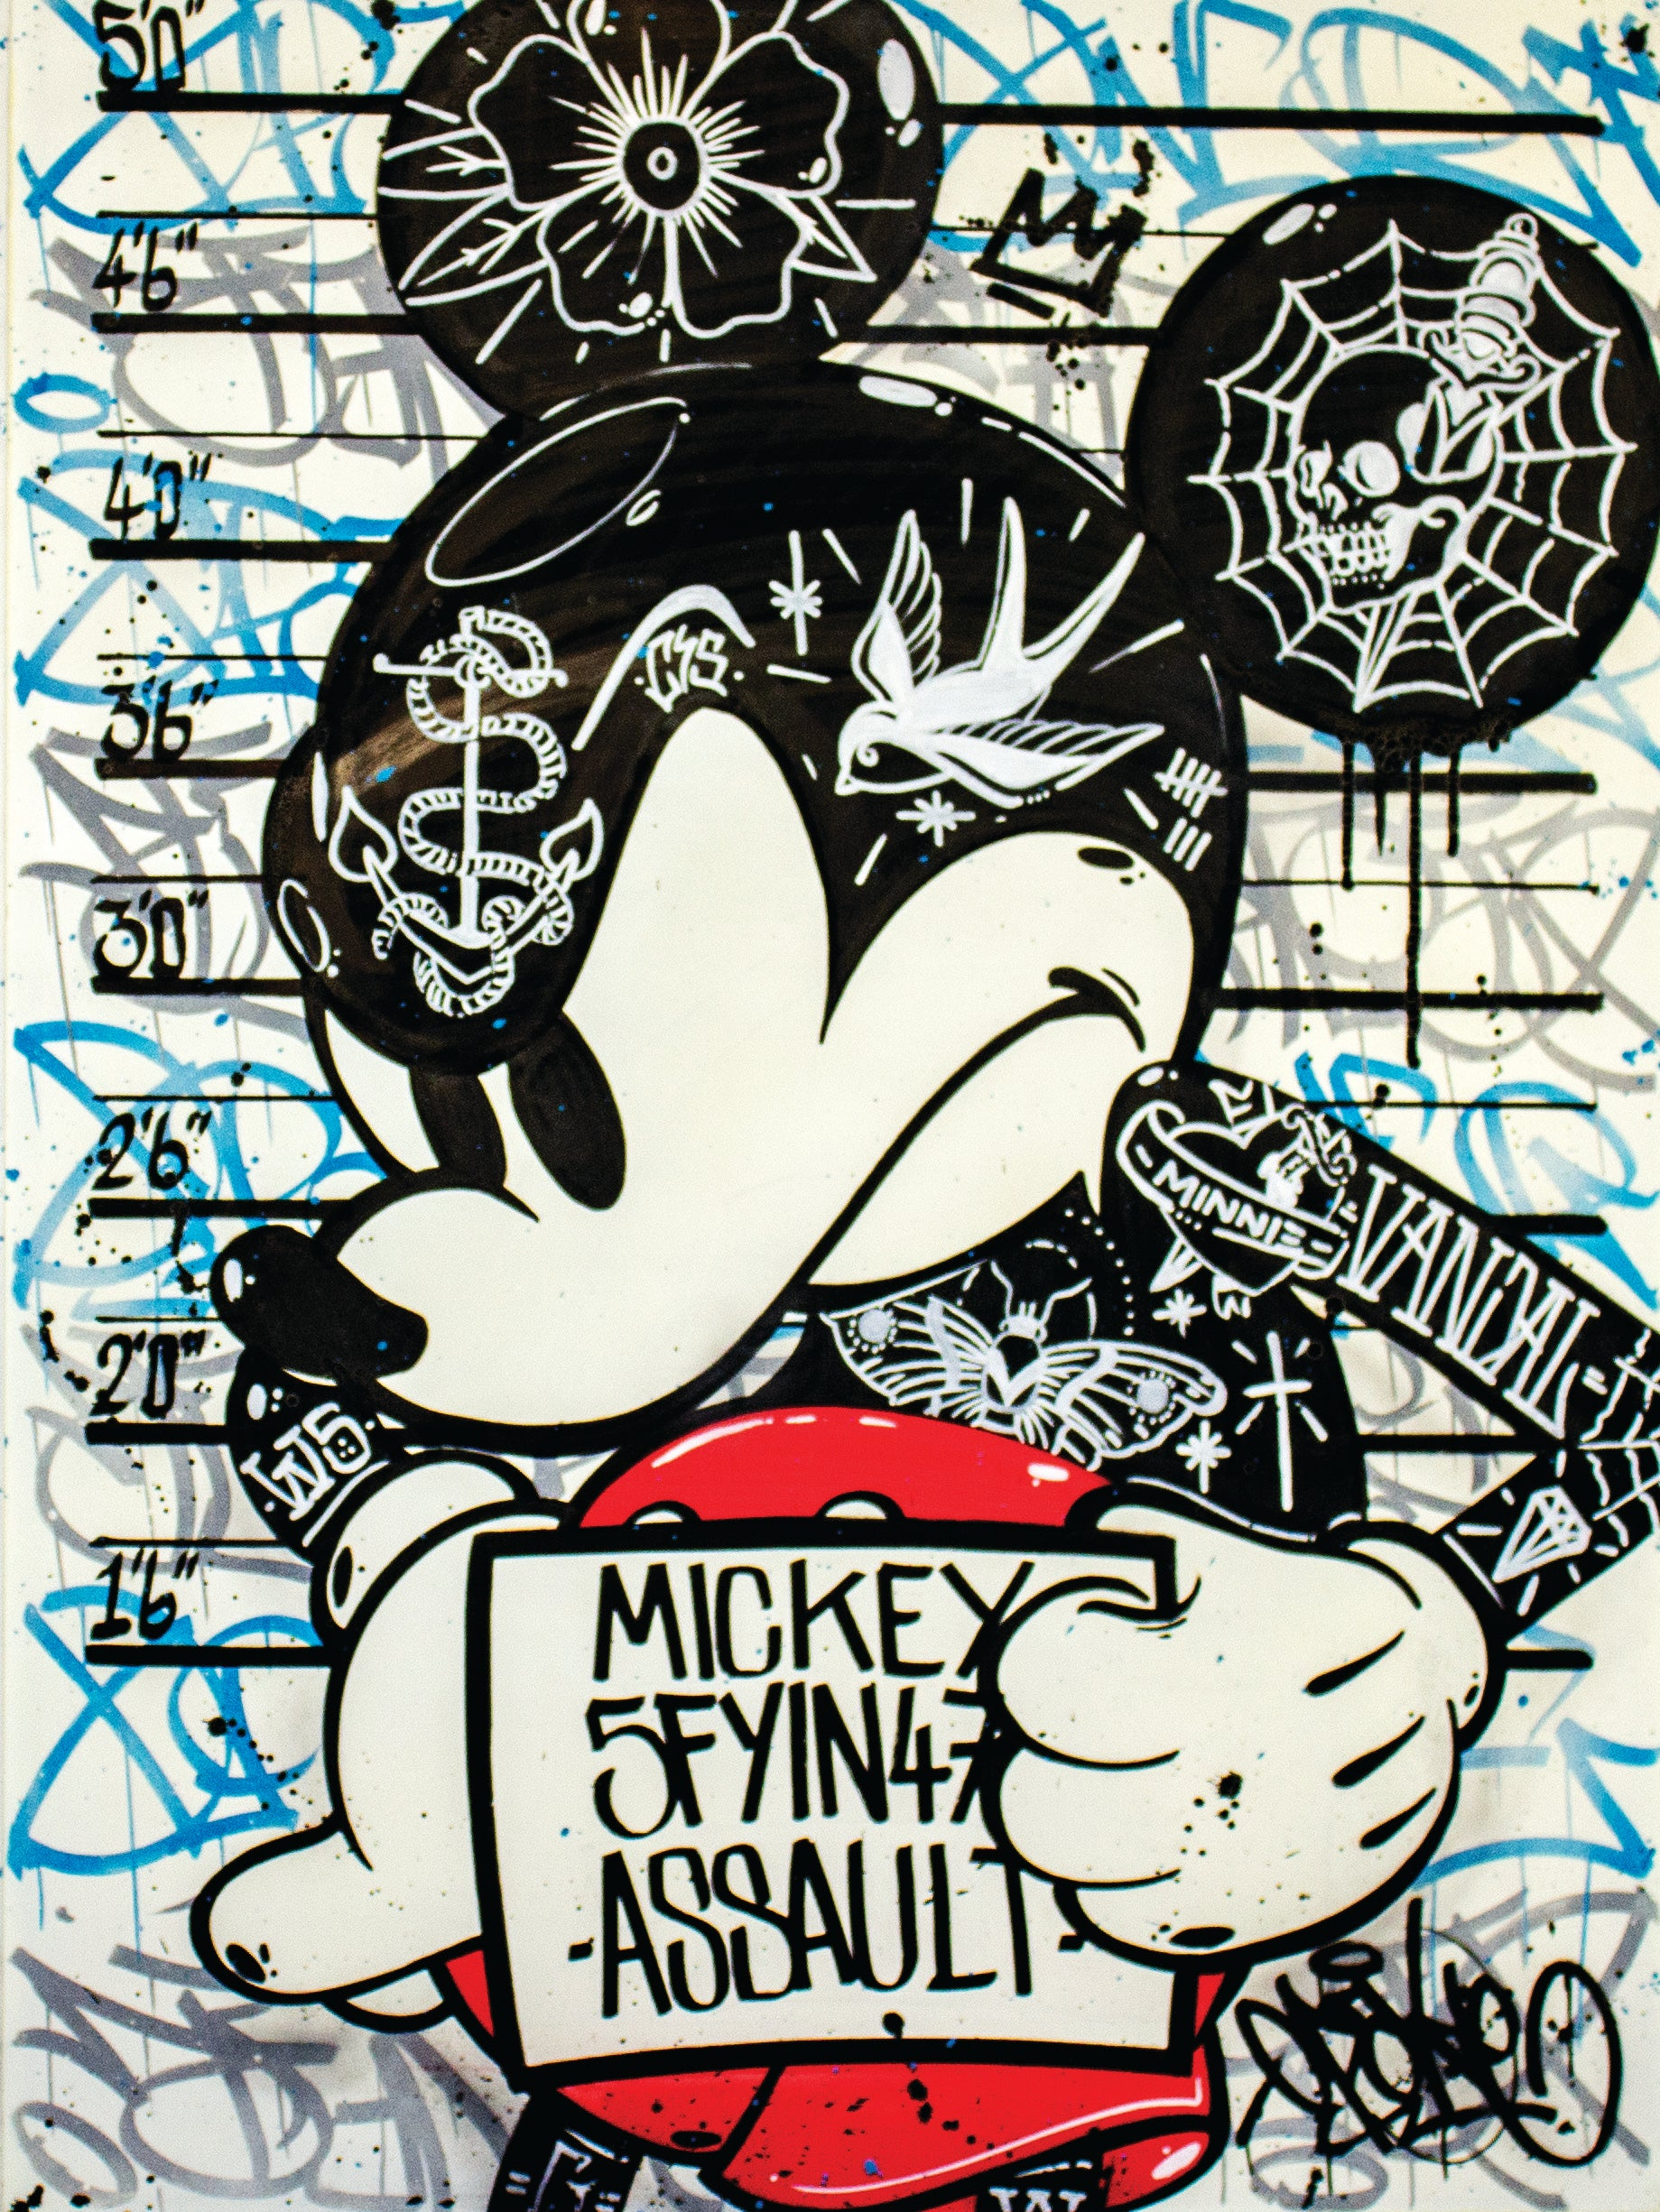 Mickey Assault